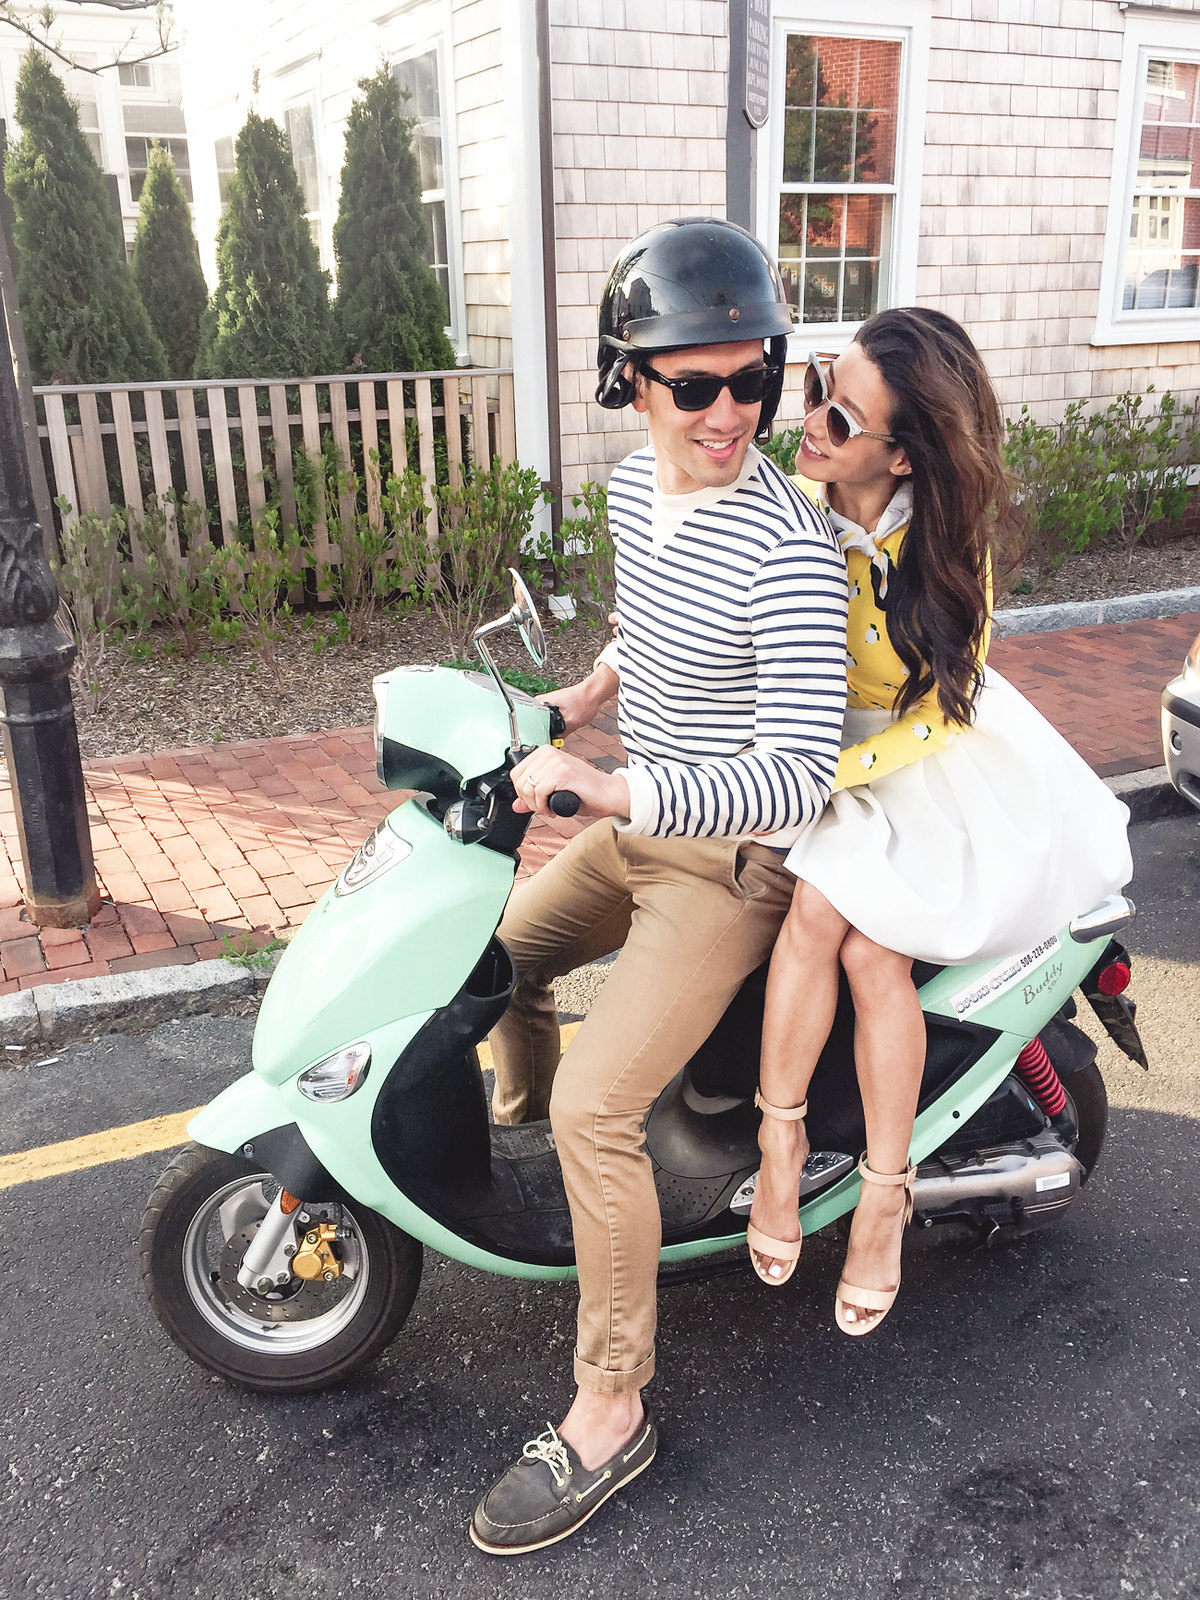 things to do on nantucket_mint green buddy scooter rental